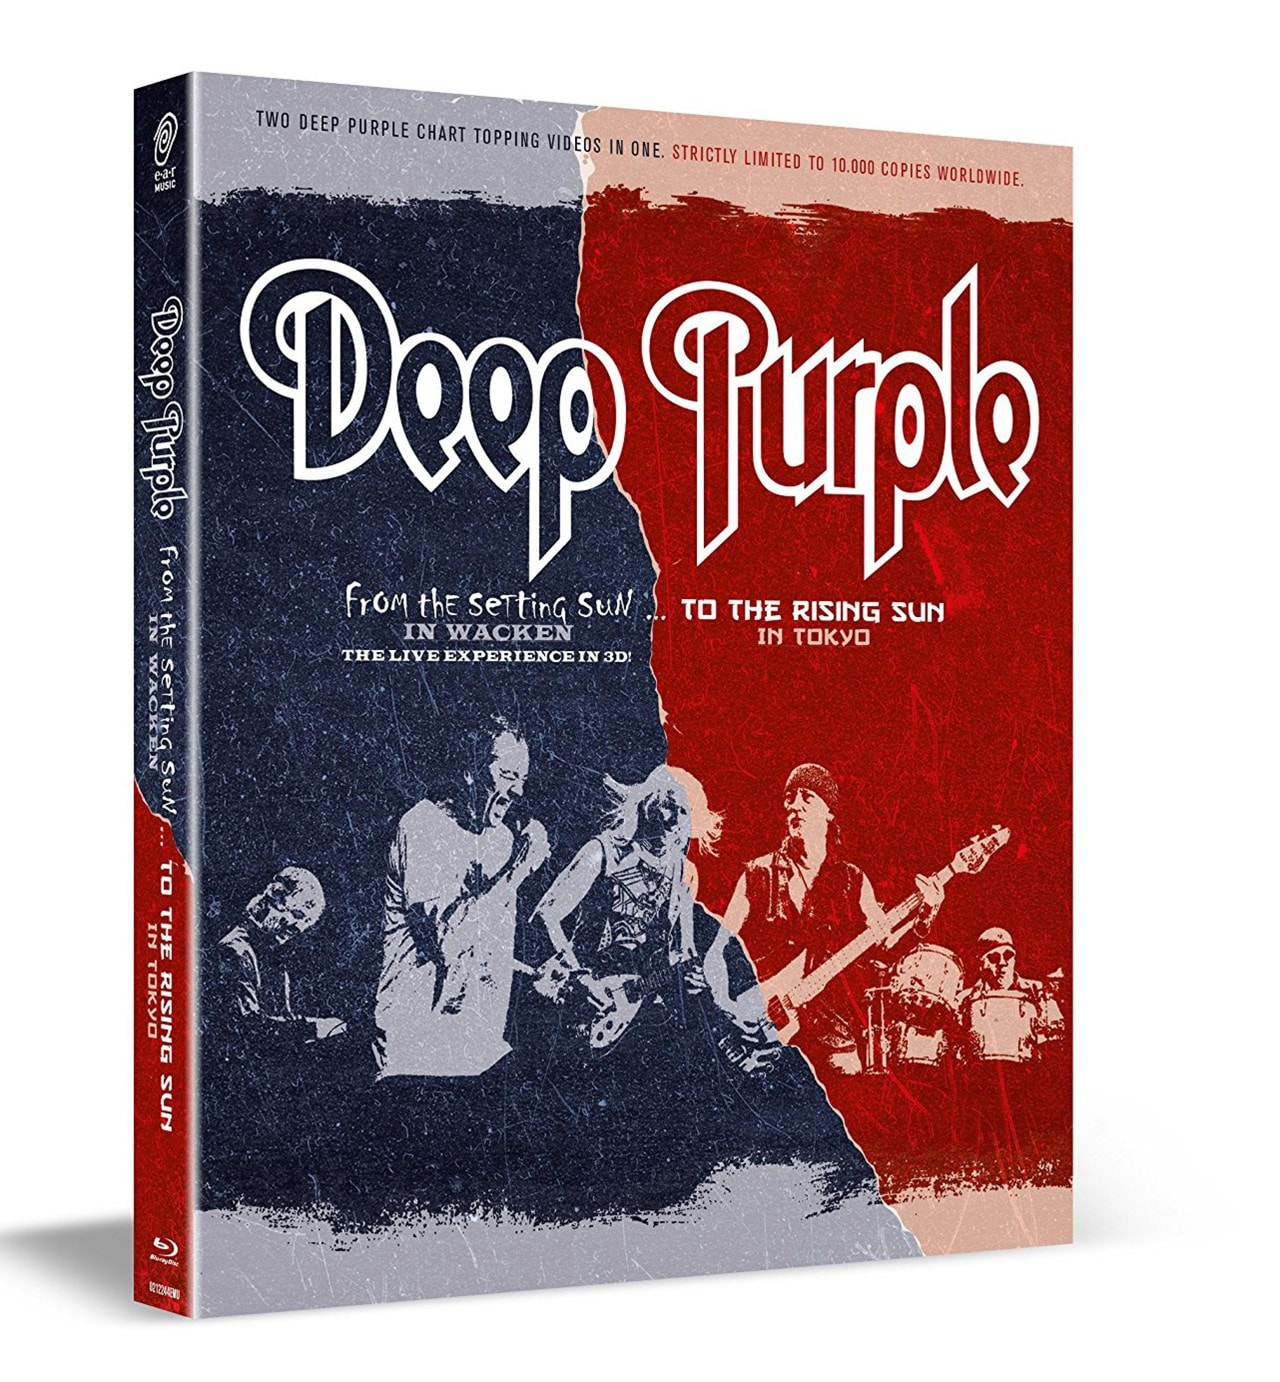 Deep Purple: From the Setting Sun in Wacken... To the Rising... - 3